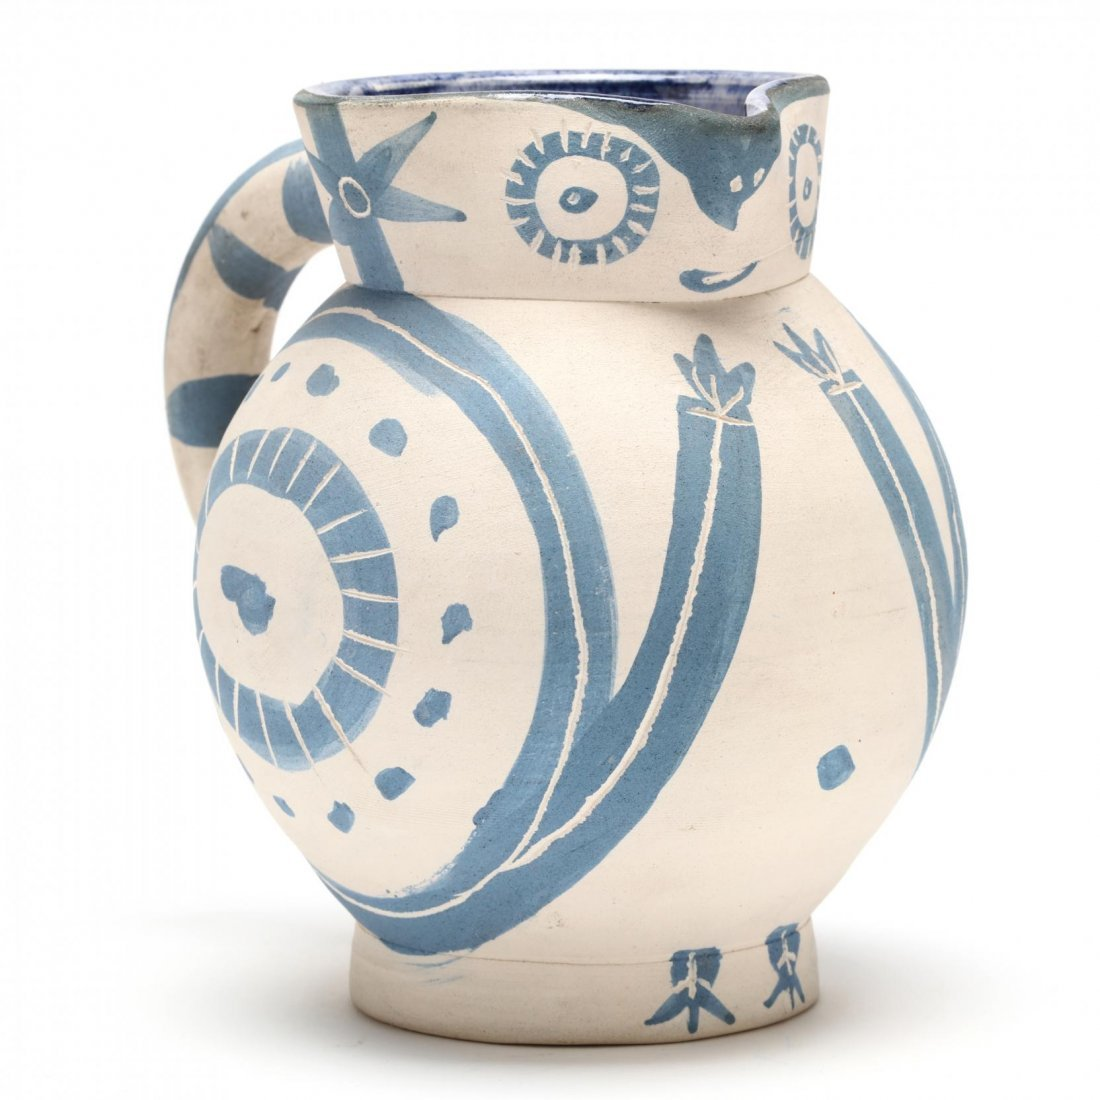 Pablo Picasso (1881-1973), Ceramic Owl Pitcher